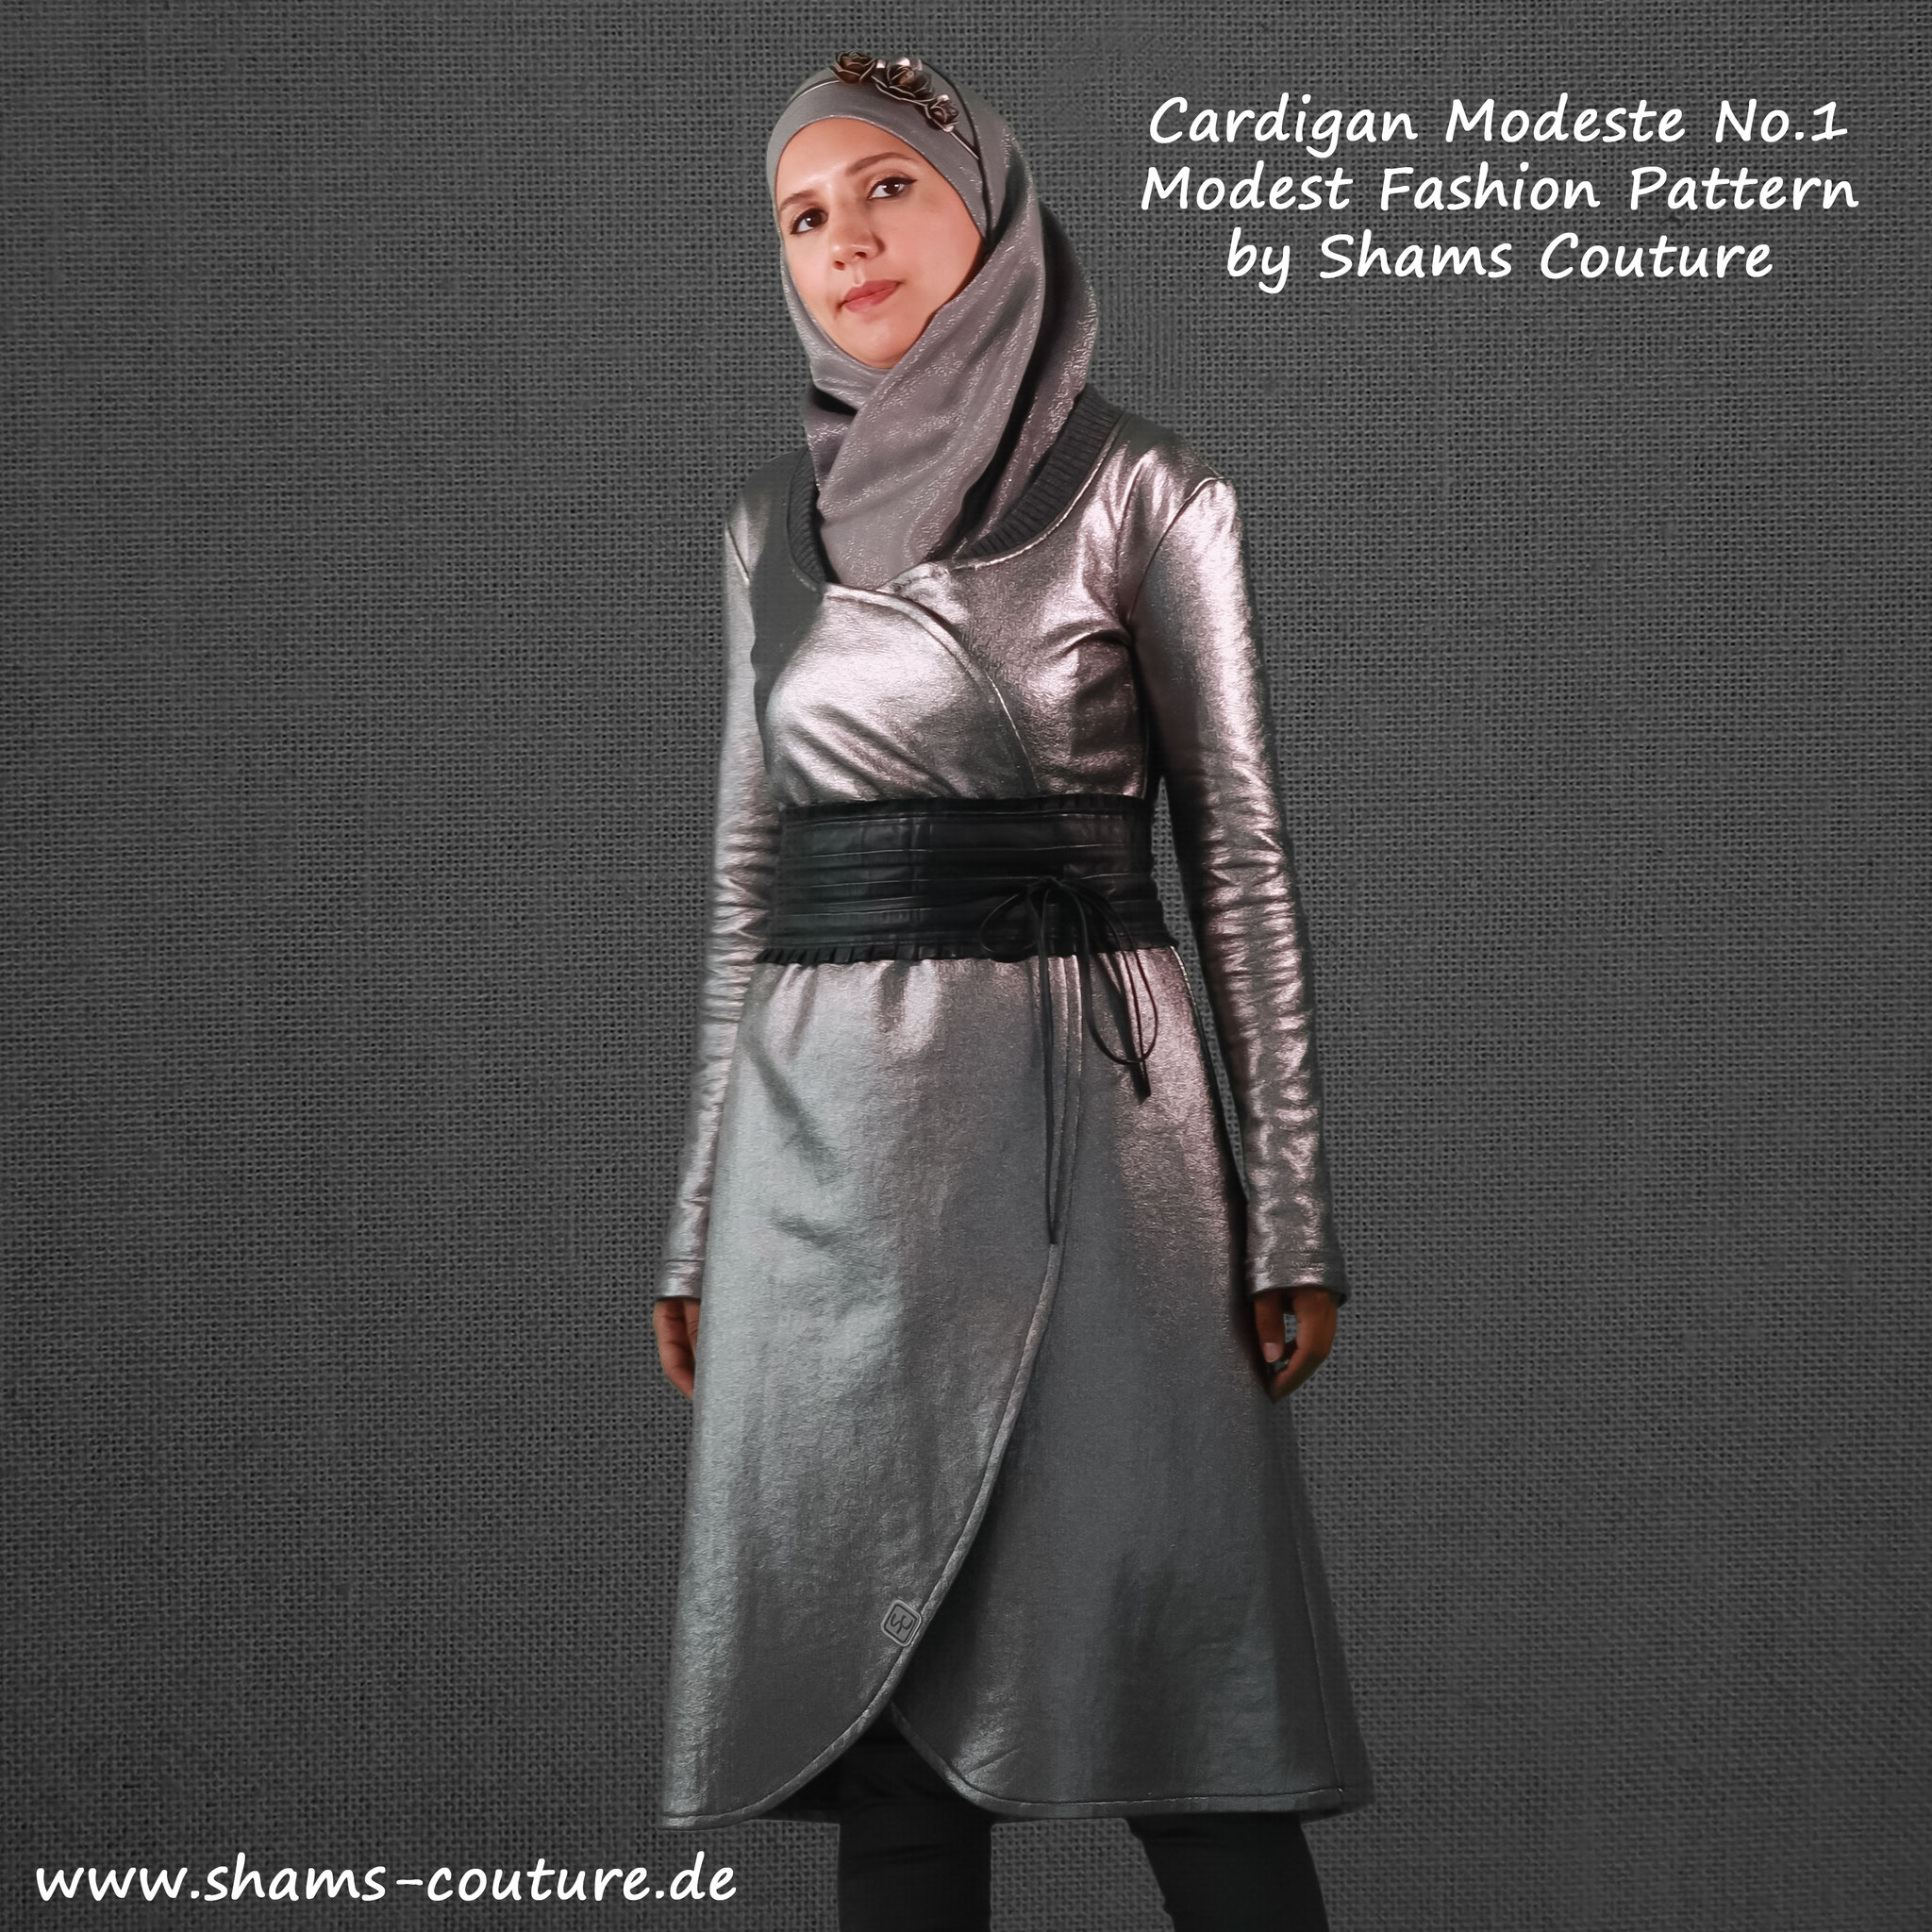 "Modest Fashion Schnittmuster ""Cardigan Modeste No.1"" von Shams Couture"